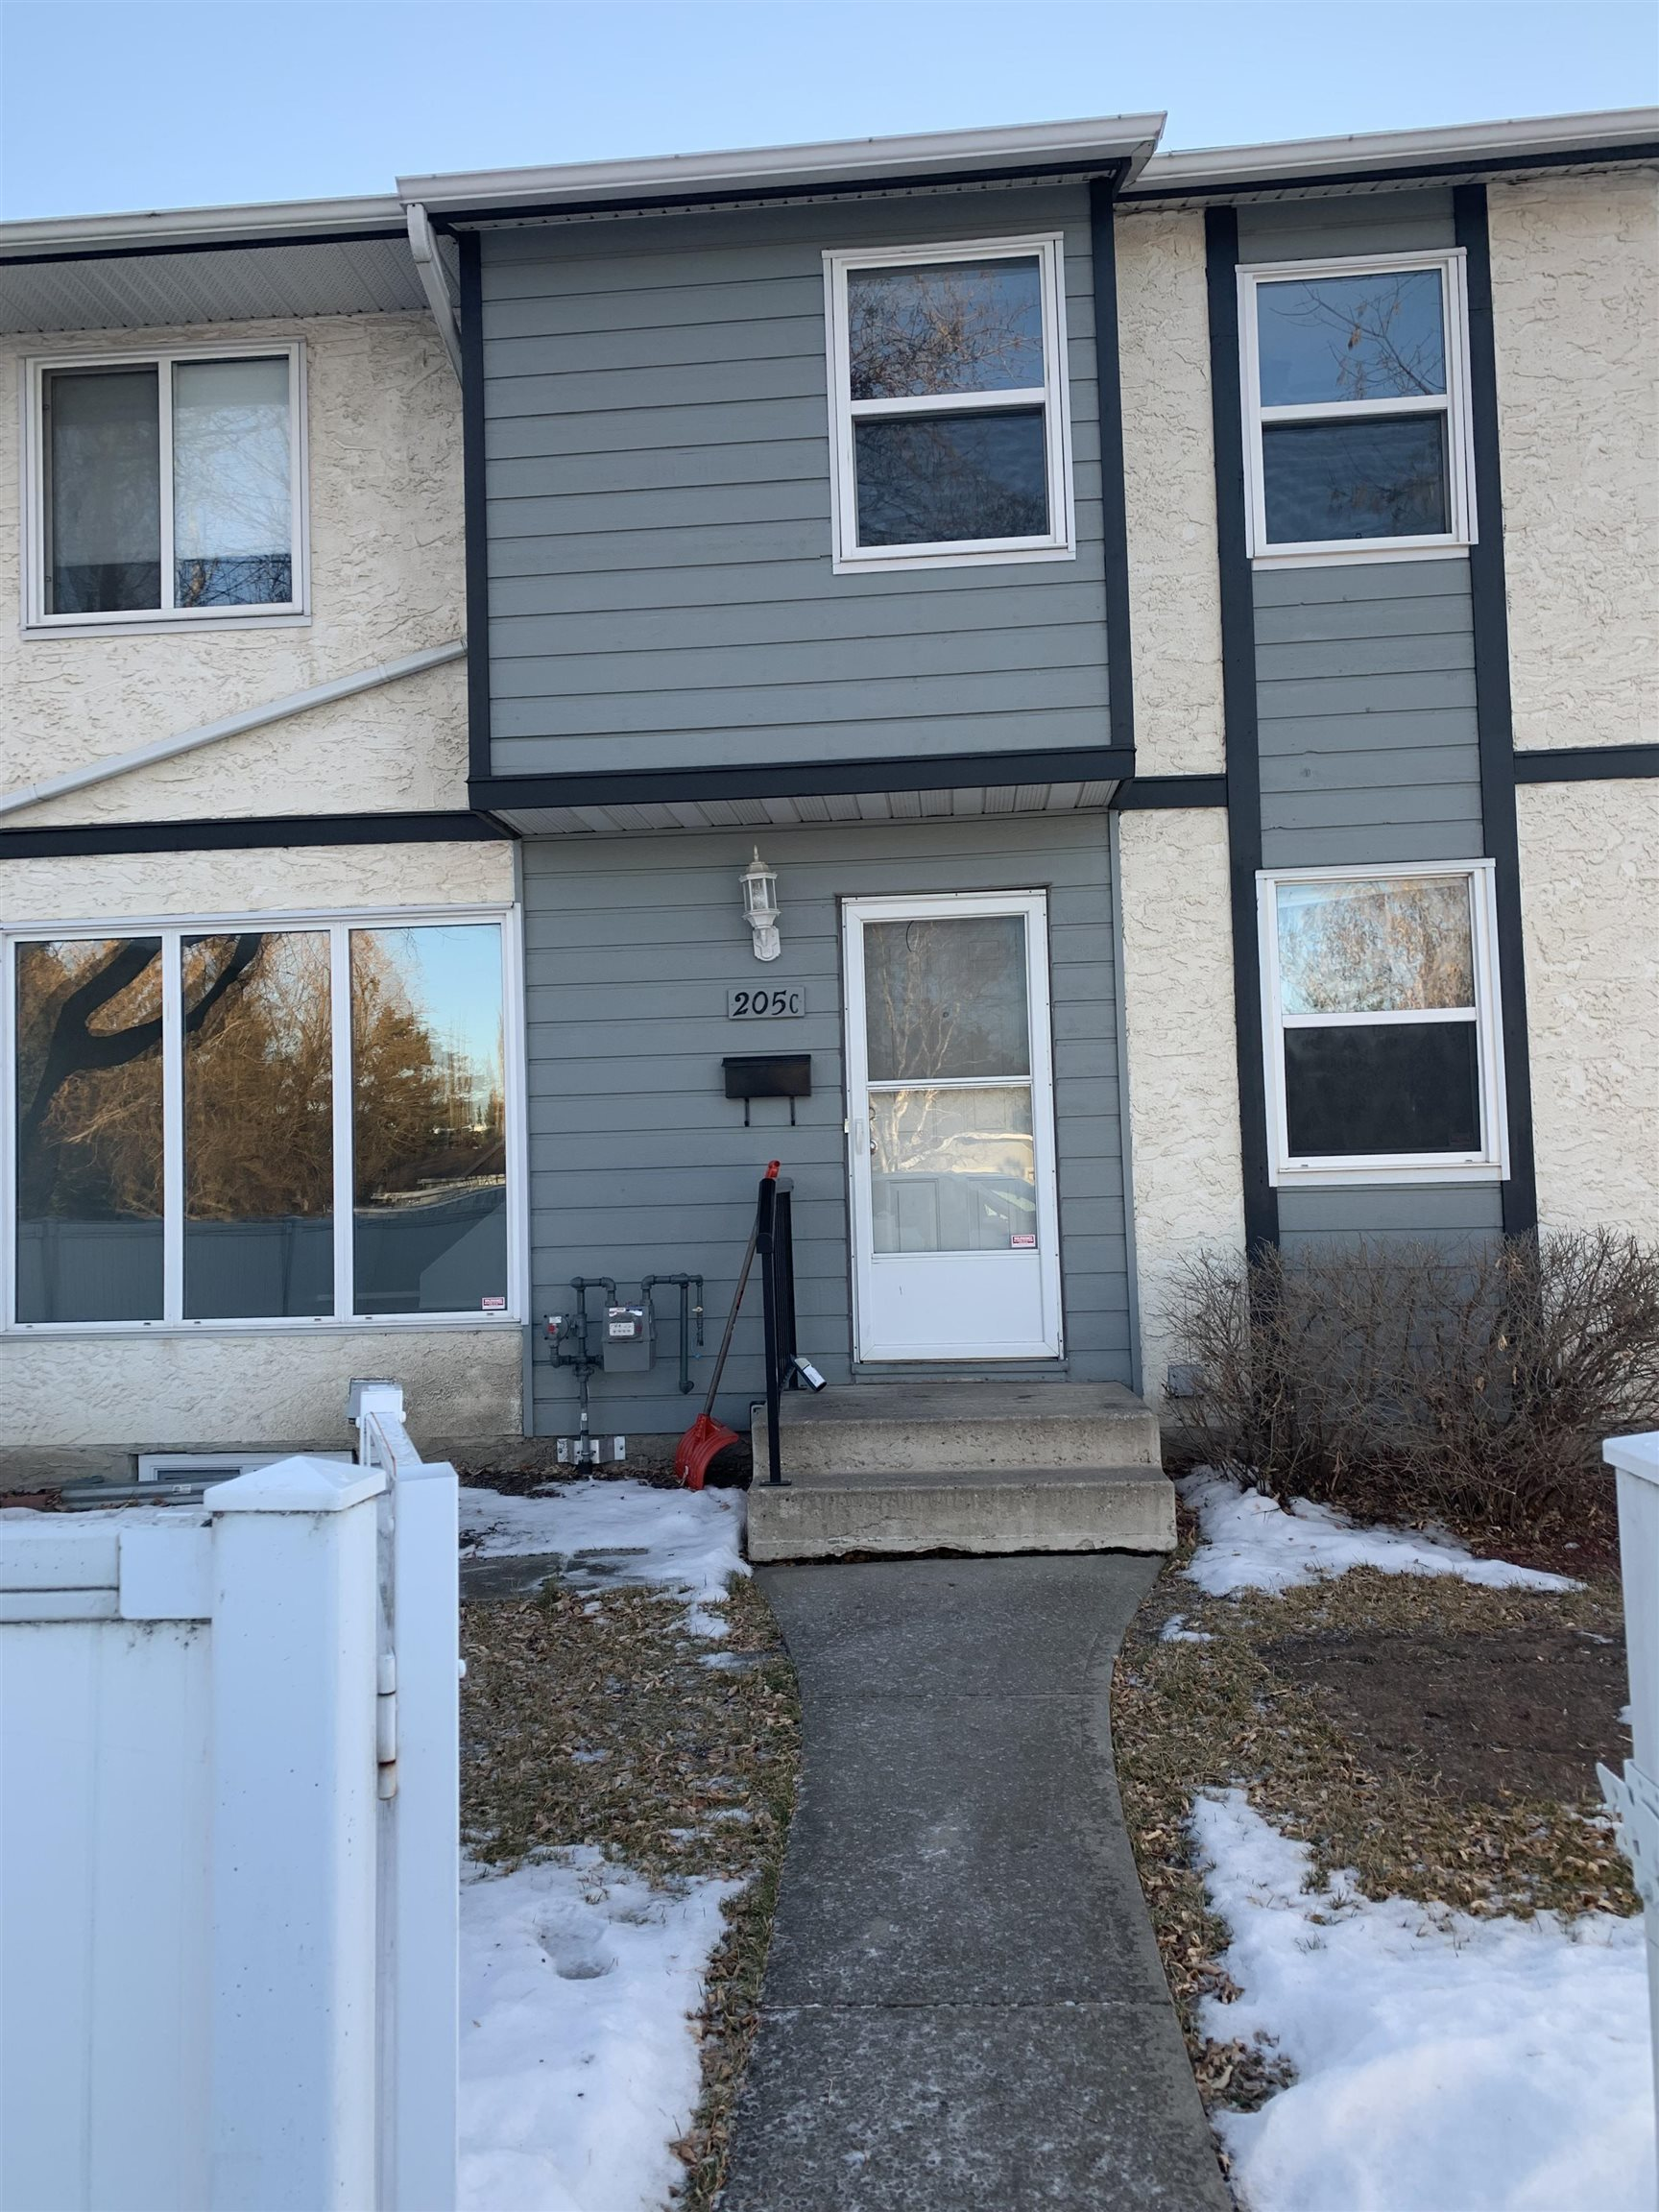 Calling on INVESTORS or first time home buyers! This townhouse has been consistently rented out for the past 10 years! This clean, spacious unit is in a family friendly neighbourhood with walking trails and greenspace nearby.   It is an end unit and has a private front yard that is surrounded by a low maintenance vinyl fence.  Features 3 bedrooms upstairs with a 4 piece bathroom and a 2 piece bathroom on the main level.  All new carpets throughout the townhouse.  You will note when you drive into Homestead Village how well maintained this complex is.  You are close to schools, parks and all amenities.